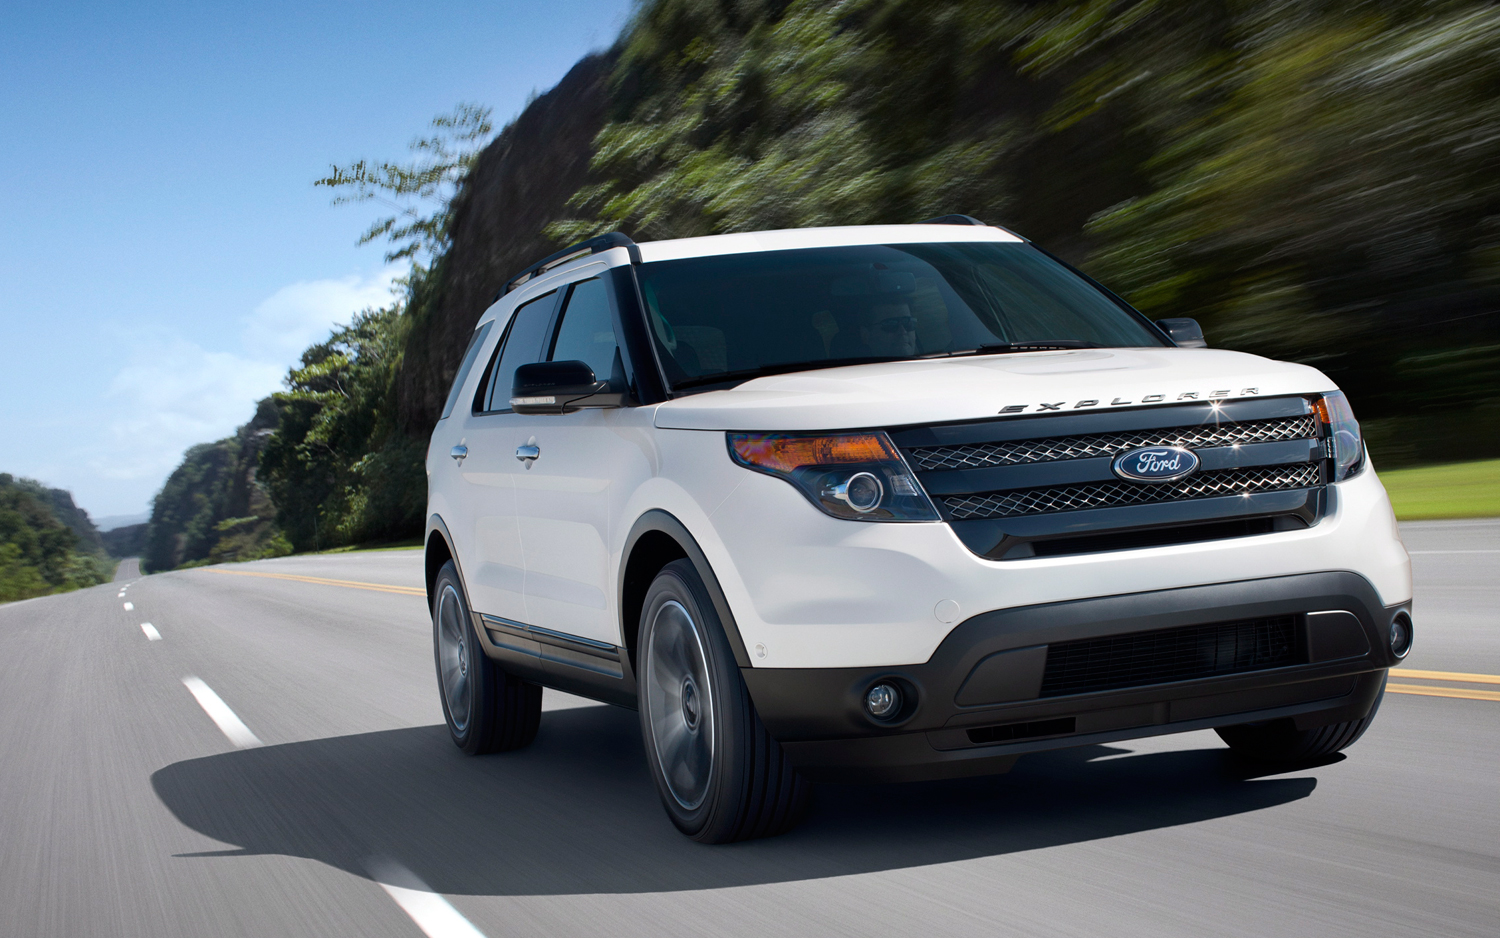 2014 Explorer Fuse Diagram Wiring Library. 2013 Ford Explorer Sport. Ford. 2014 Ford Explorer Schematic At Scoala.co